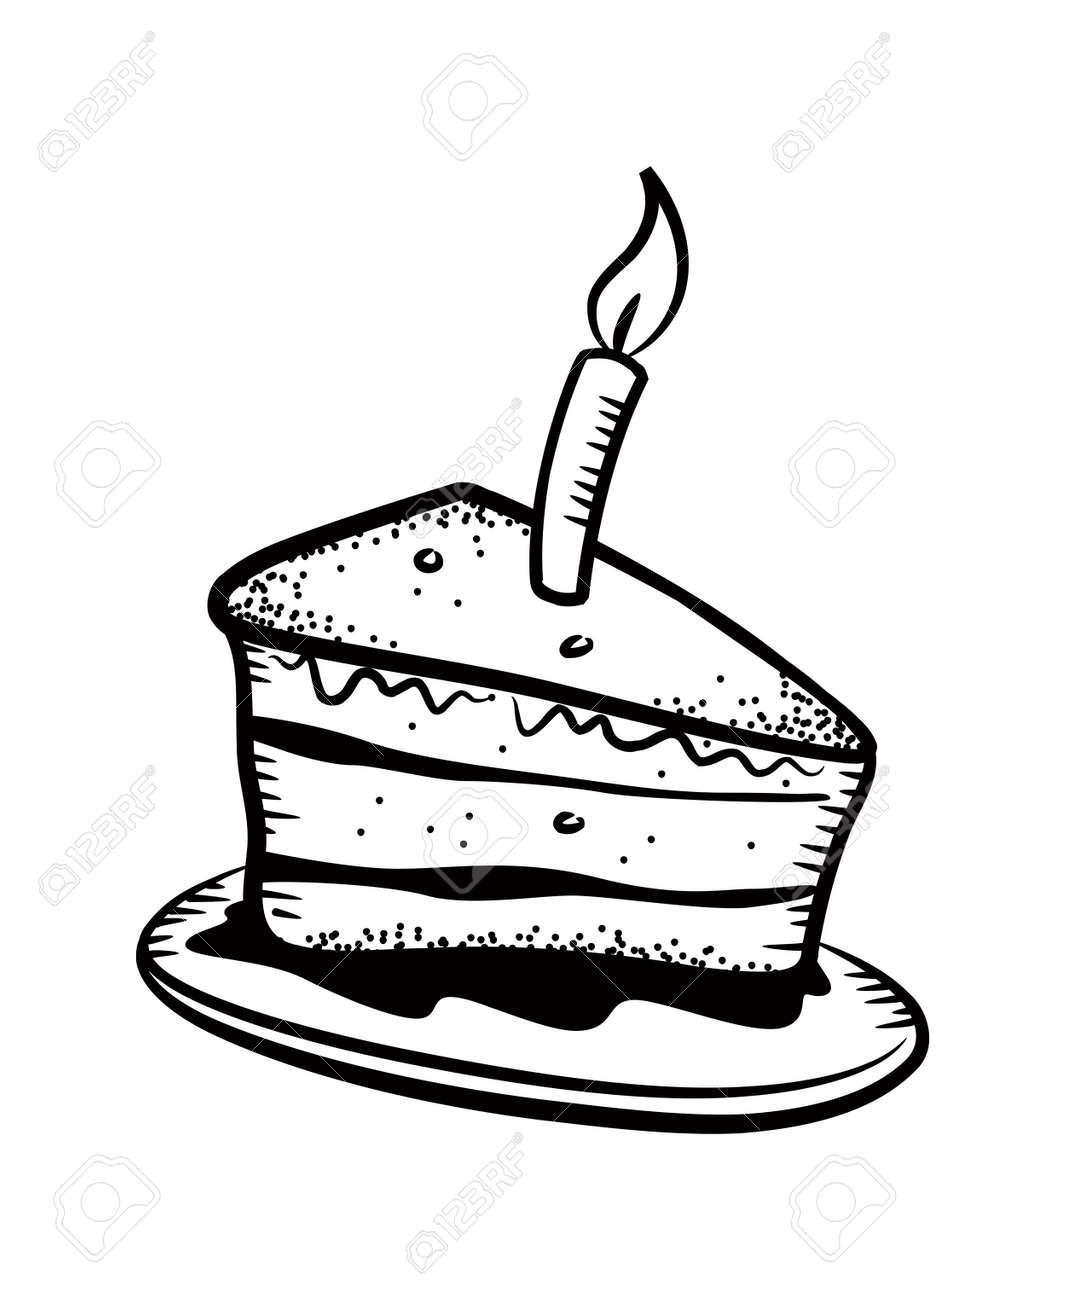 Cake Slice With Candle Stock Vector